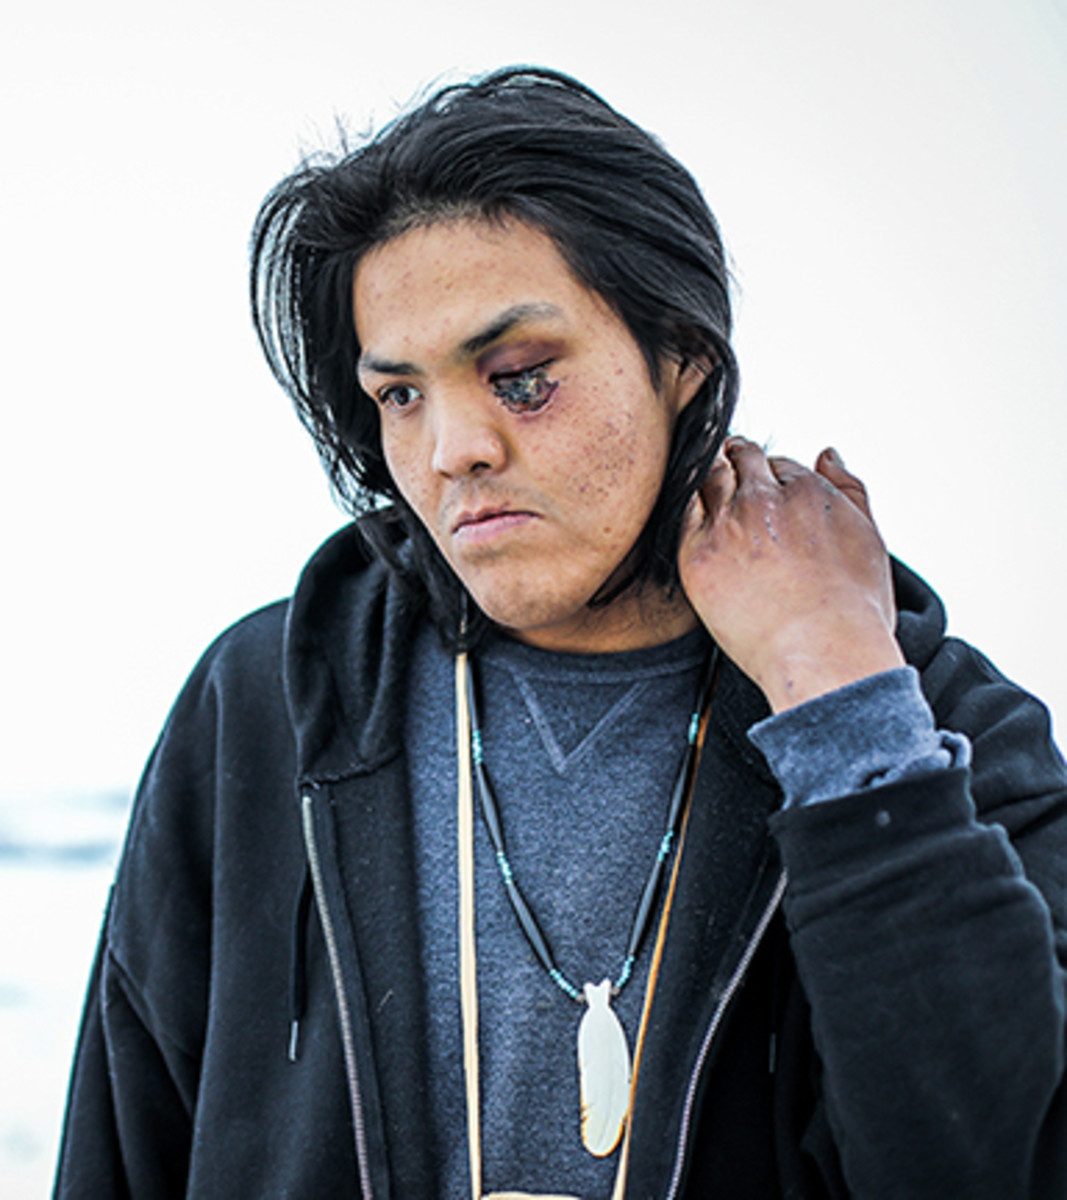 Marcus Mitchell DAPL rubber bullet wound to face